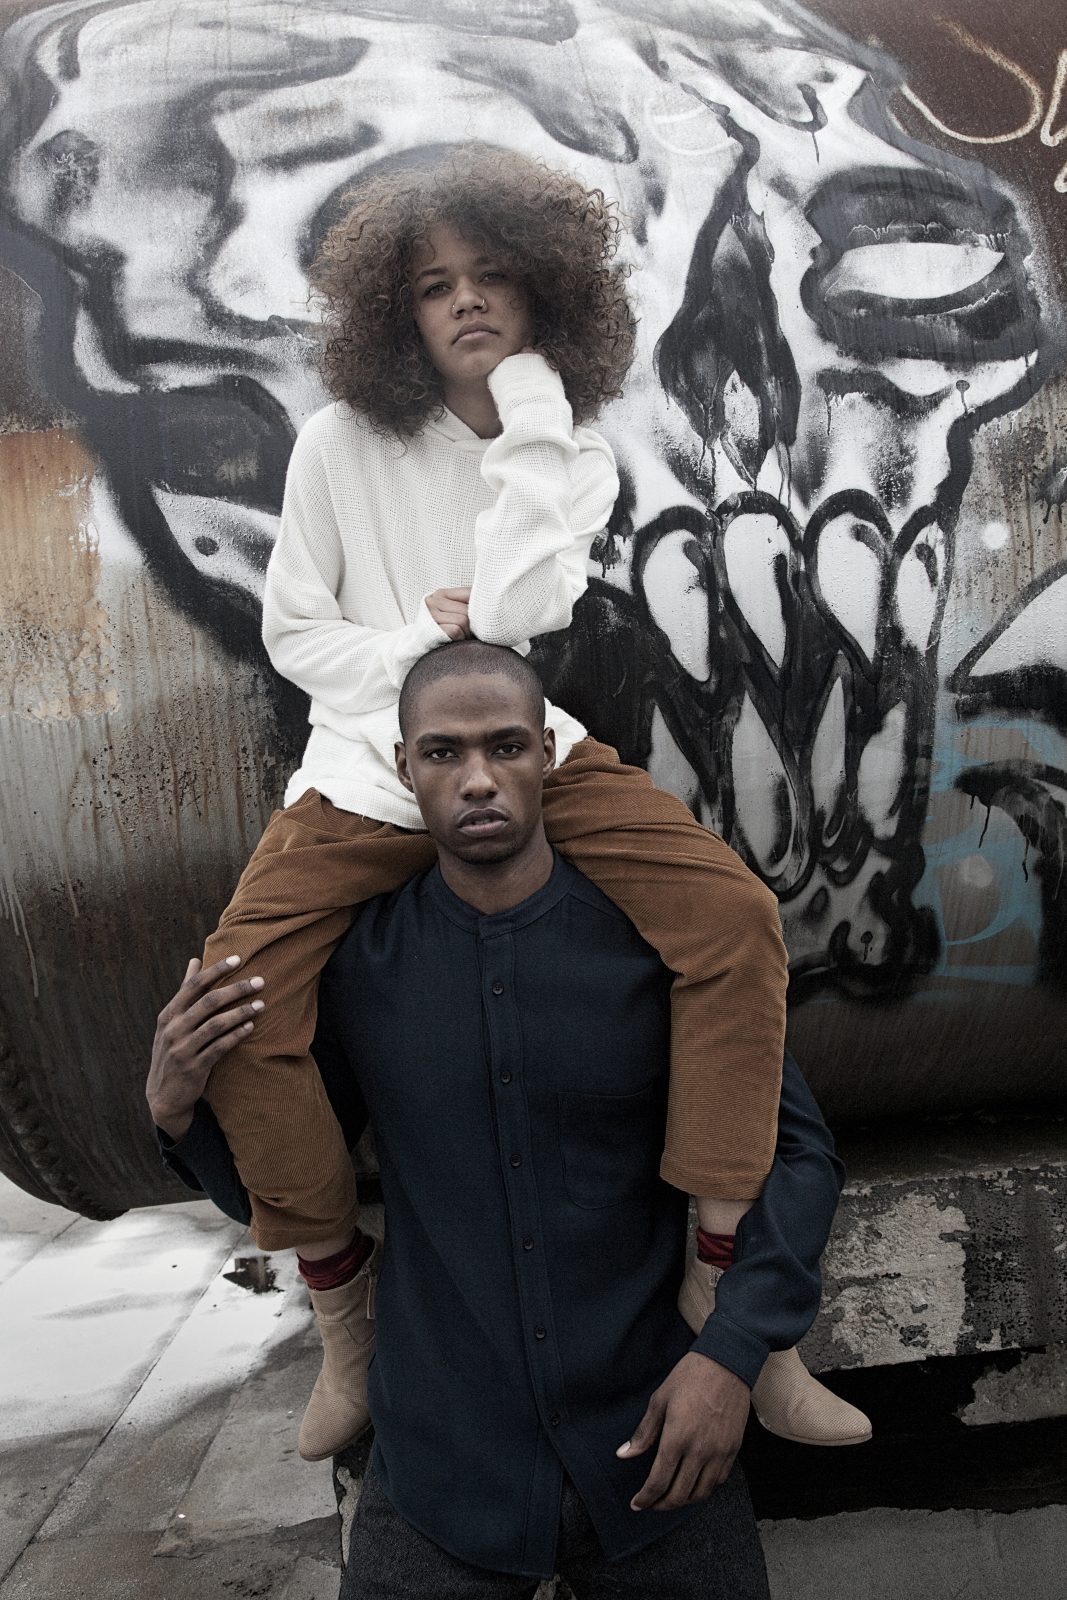 Openism share exclusive images from their latest collection